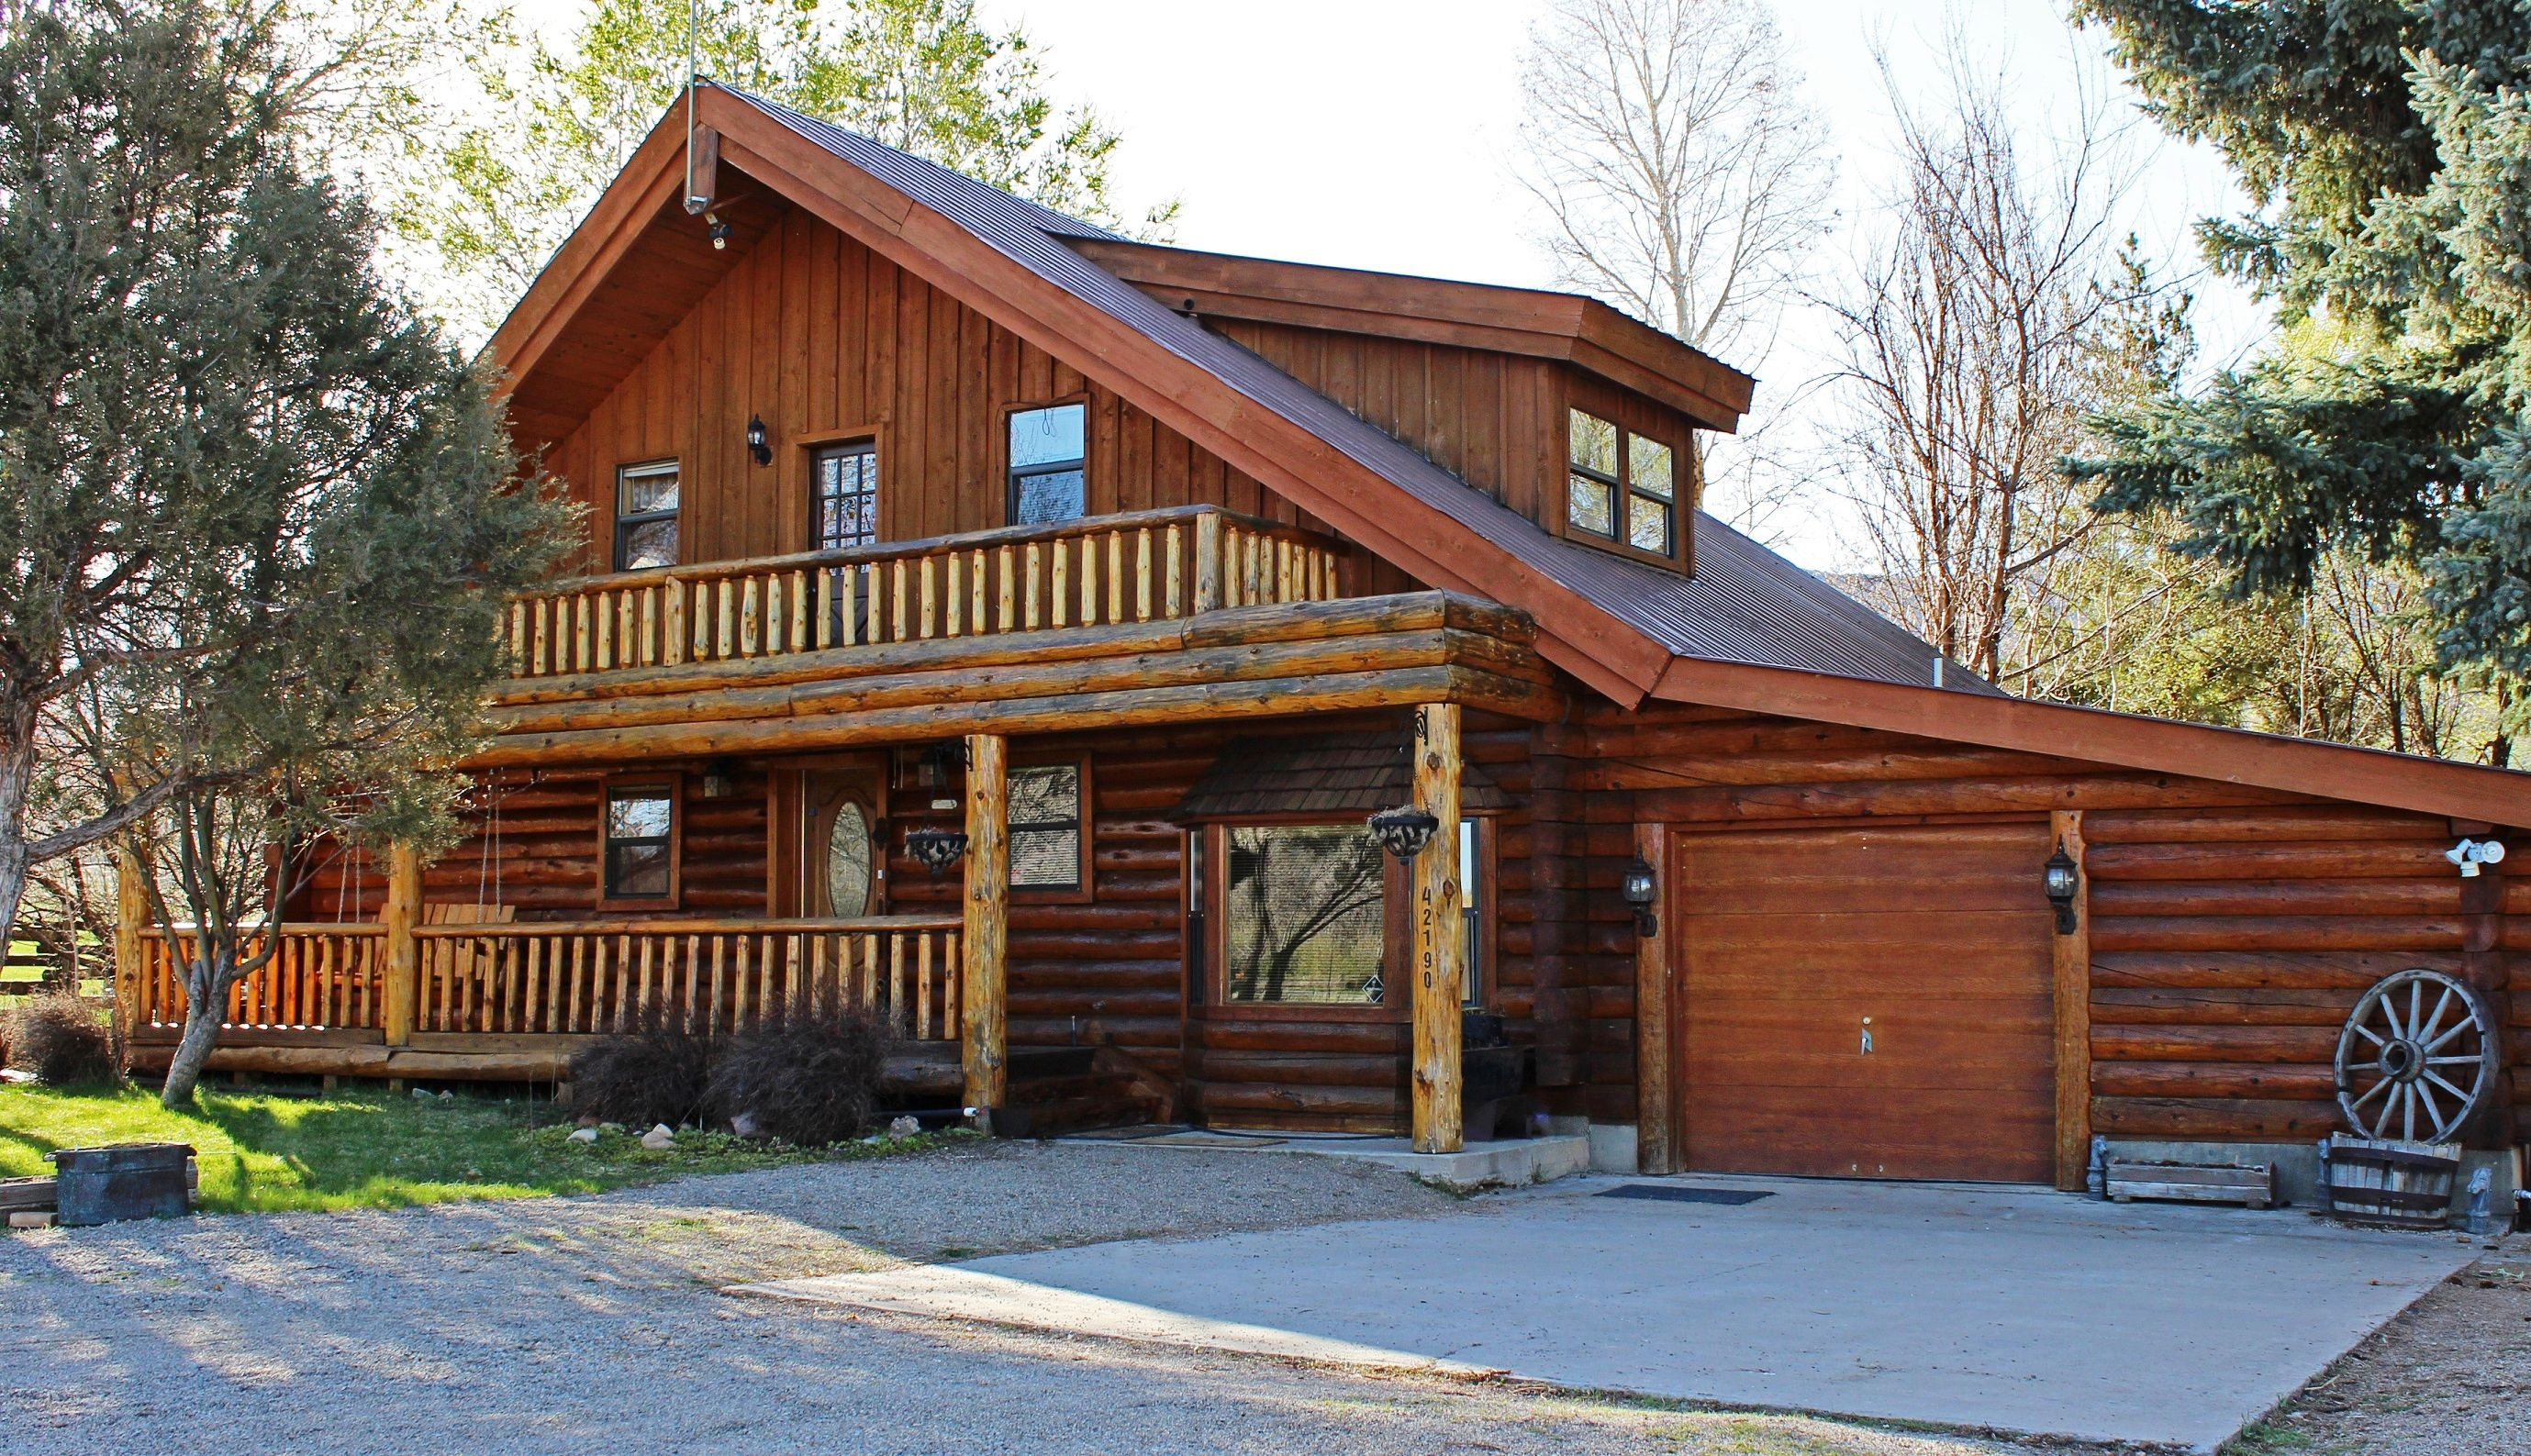 colorado cabins for log sale cabin uk europe scotland home builder